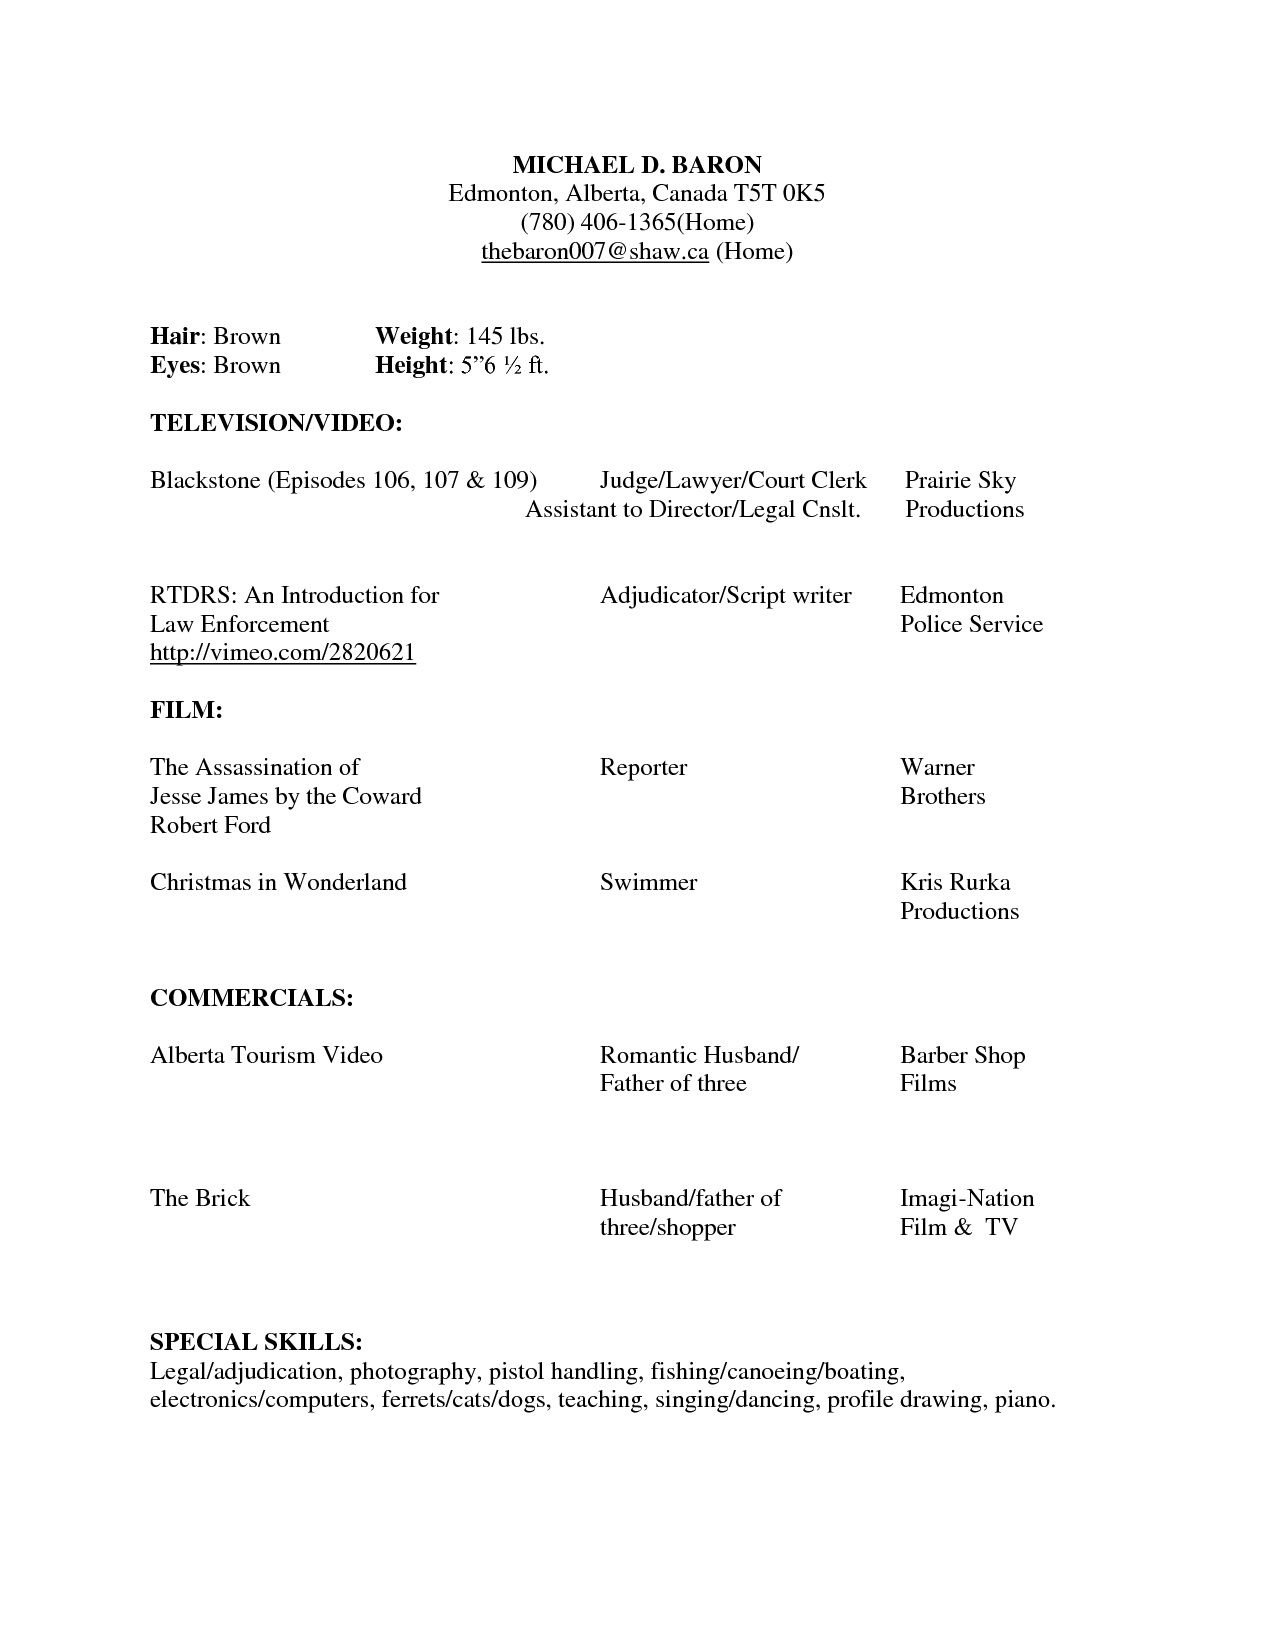 Sample Resume For Beginners Beginner Acting Resume Samples Template Acting Resume  Beginner .  Resume For Beginners